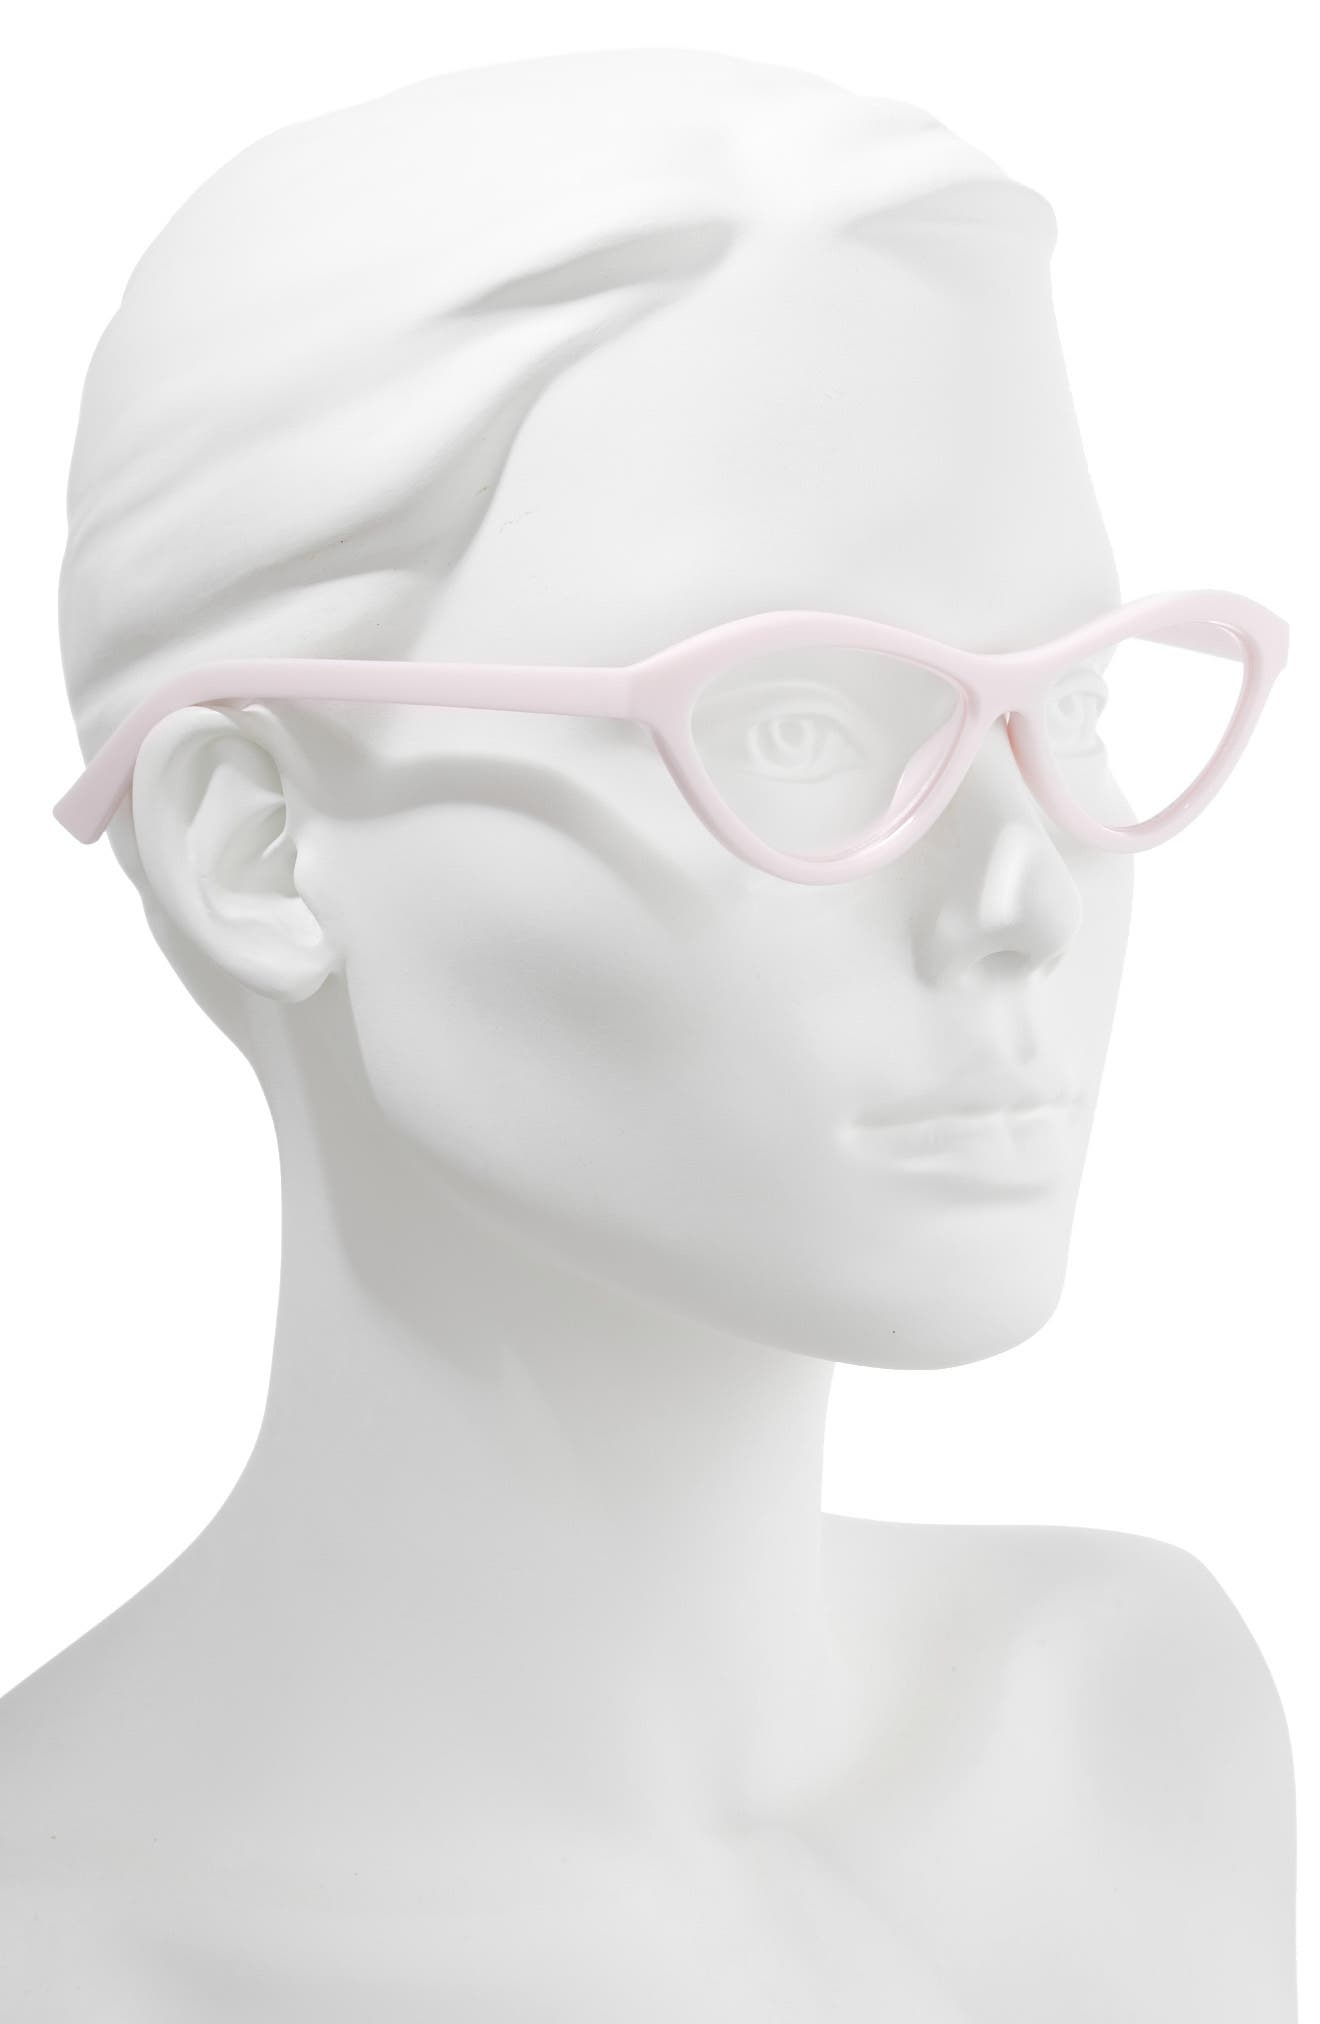 Fifty Fails a Day 54mm Reading Glasses,                             Alternate thumbnail 2, color,                             POWDER PINK